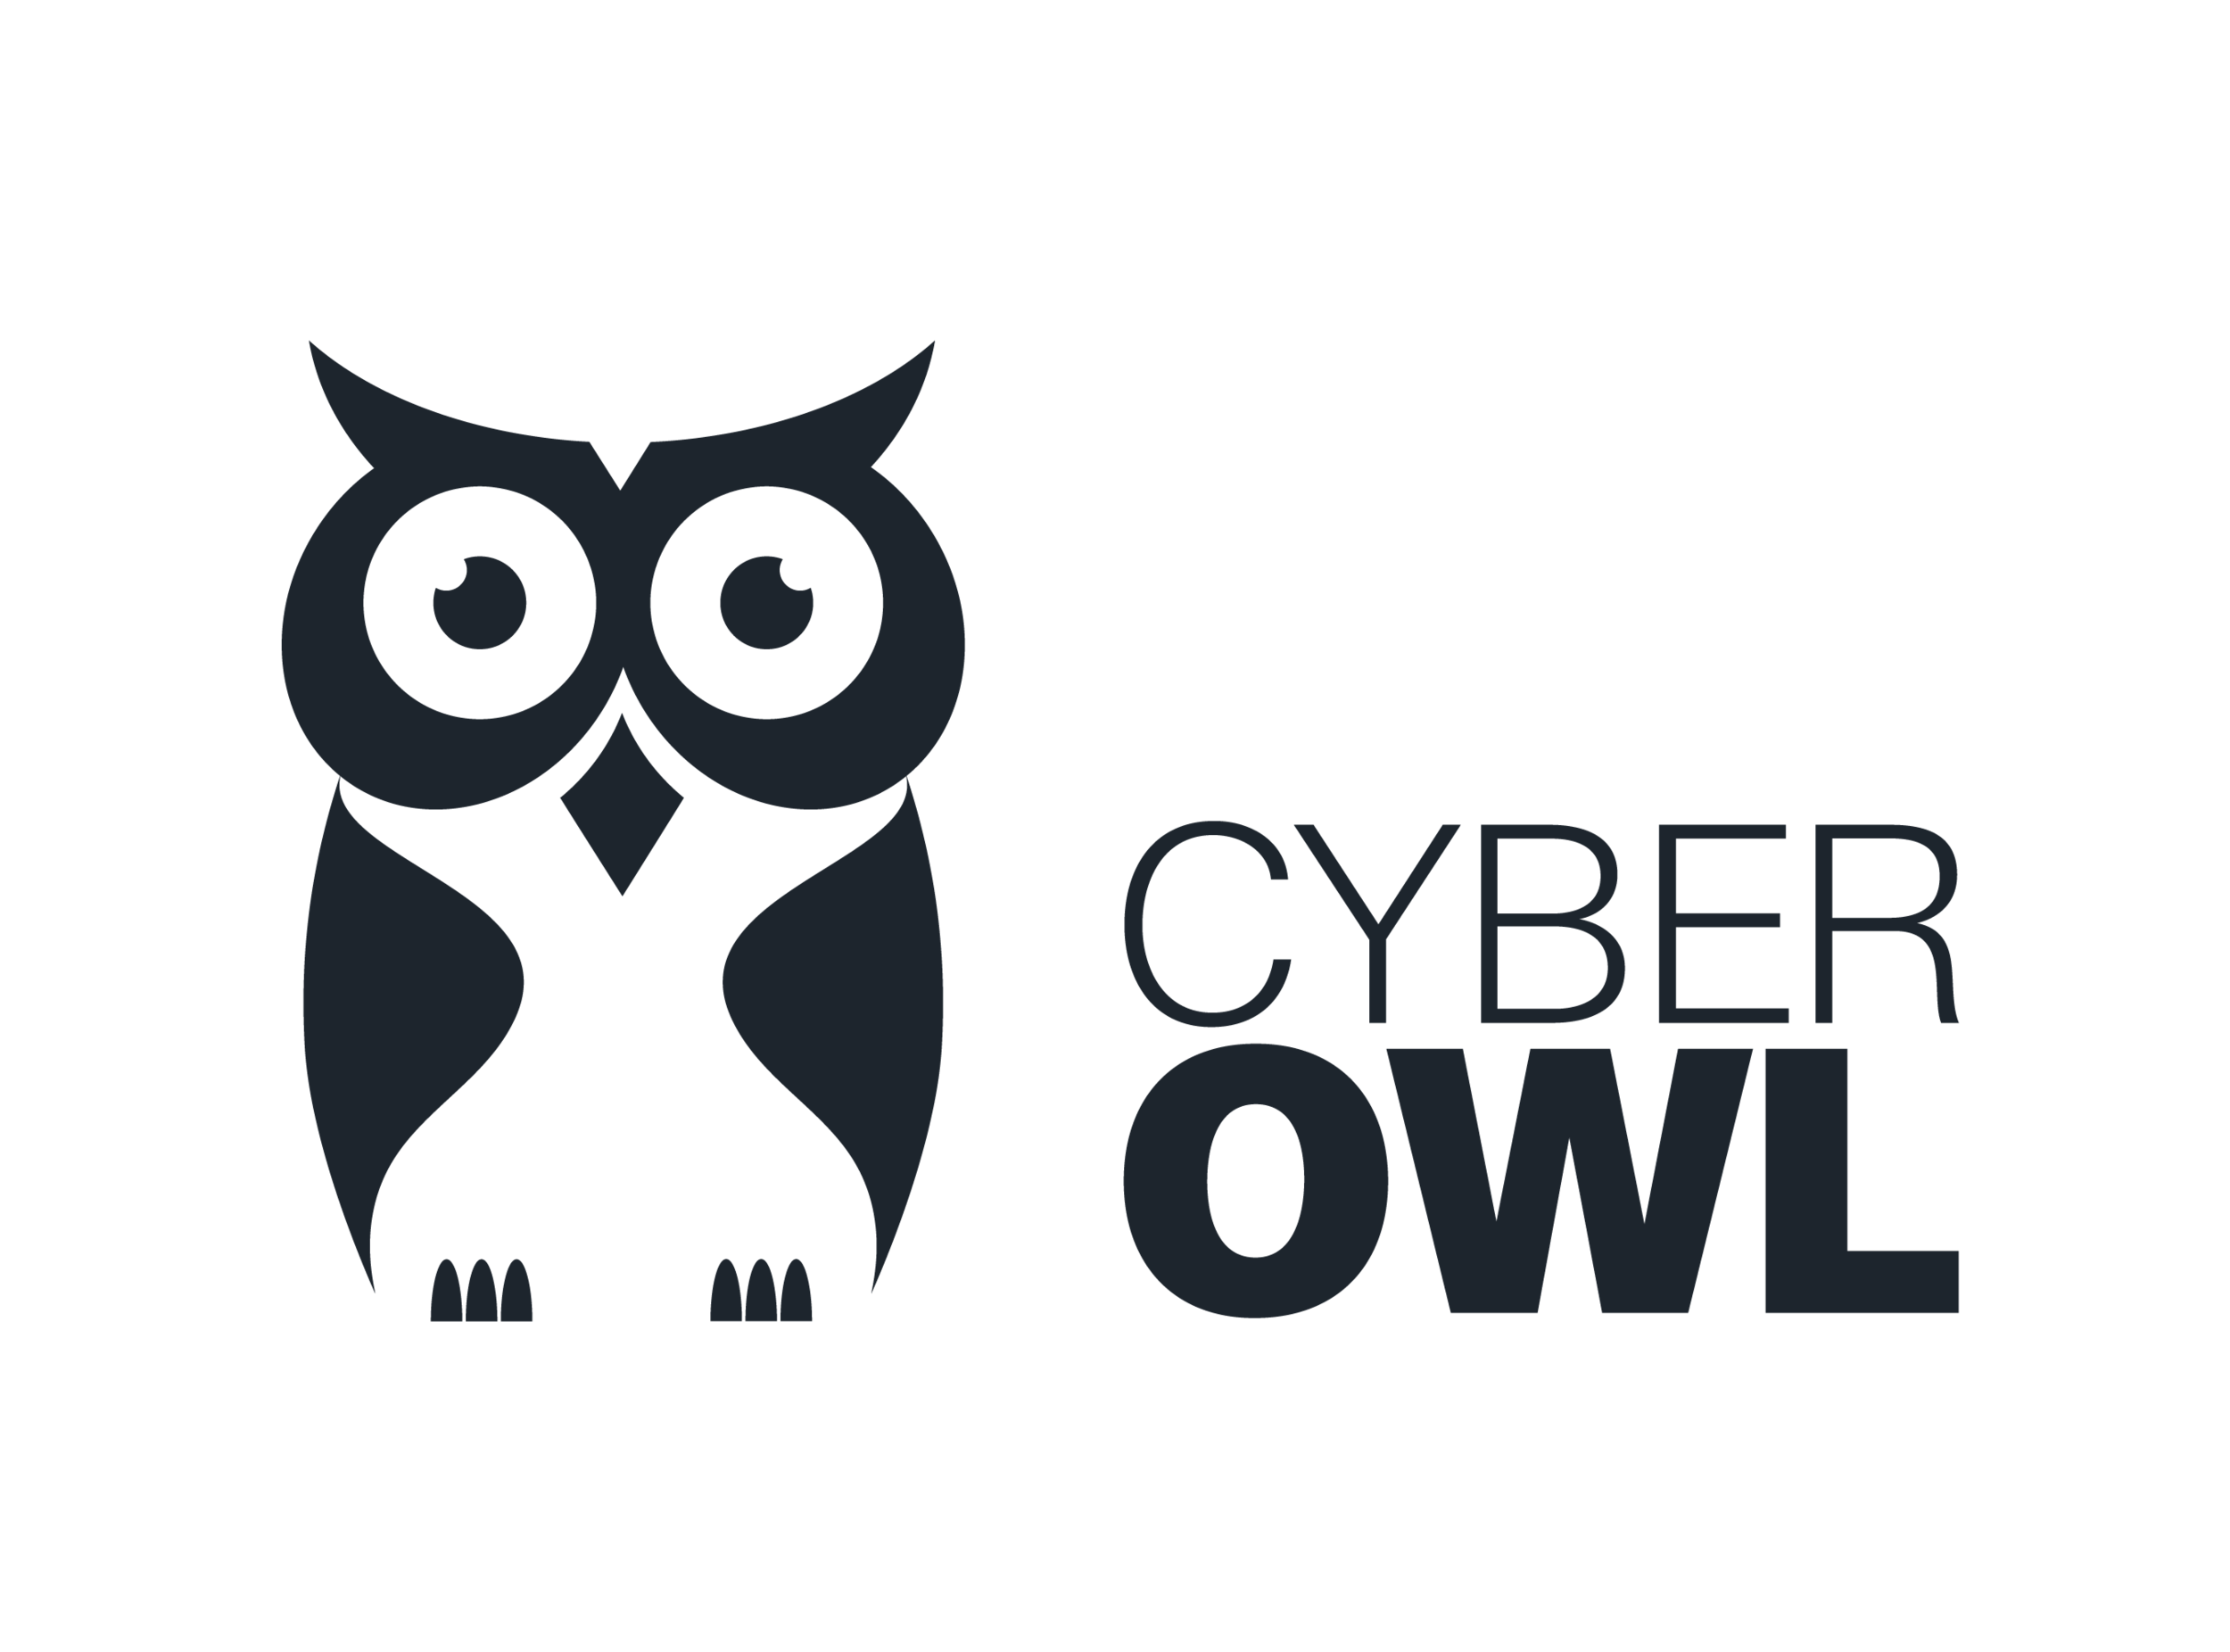 CyberOwl-Horizontal-Logo-MIDNIGHT.png